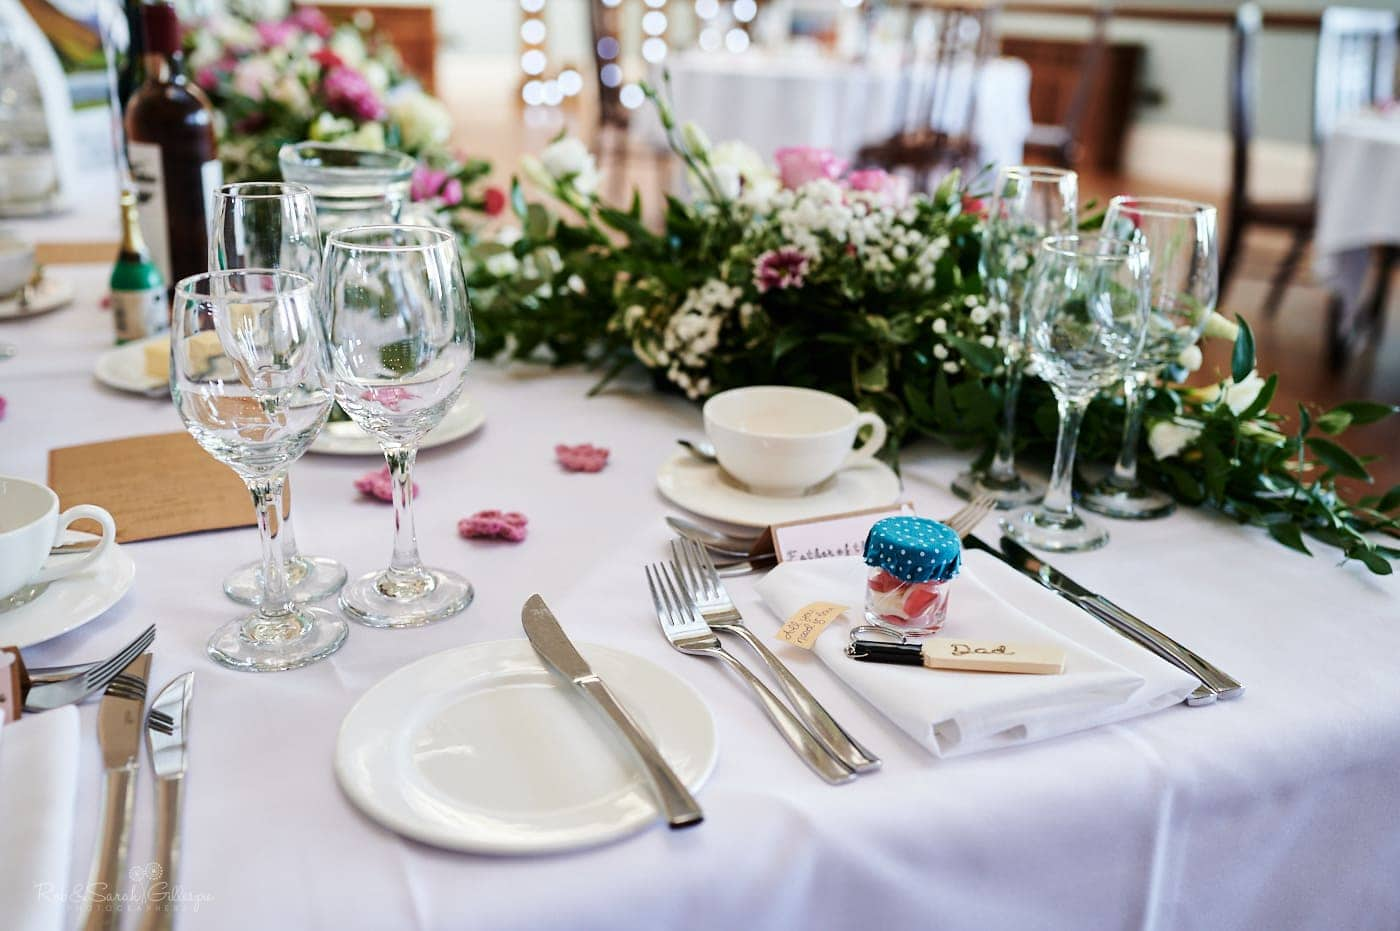 Table places for wedding meal